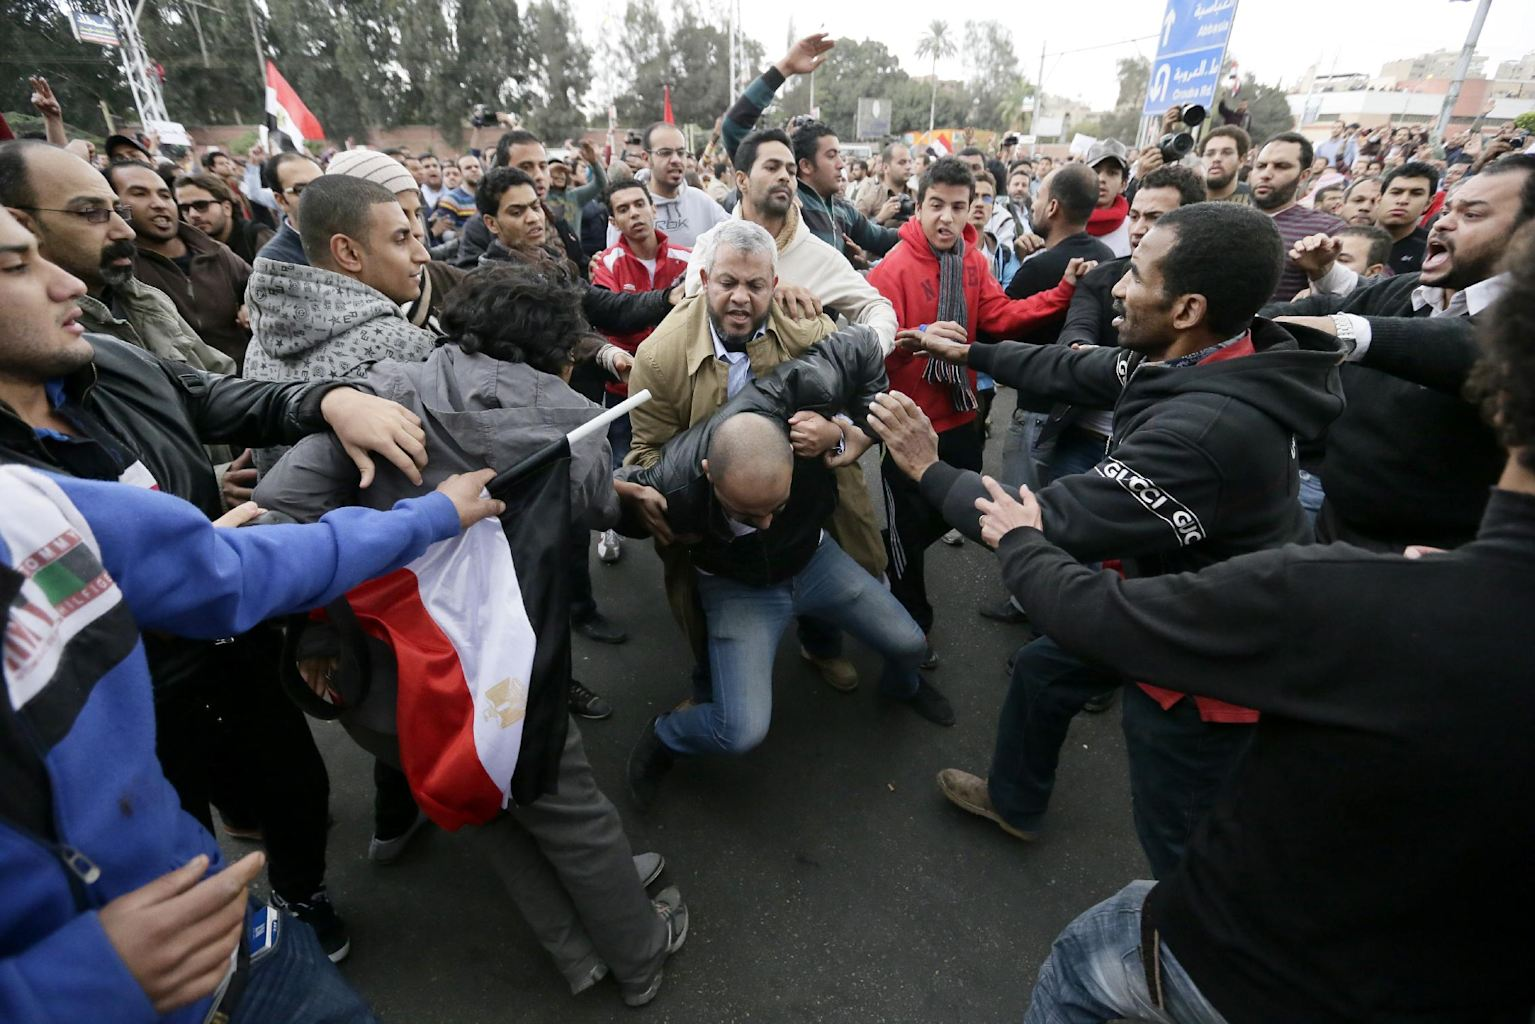 Egyptian President Mohammed Morsi's supporters beat an opponent, center, during clashes outside the presidential palace, in Cairo, Egypt, Wednesday, Dec. 5, 2012. Wednesday's clashes began when thousands of Islamist supporters of Morsi descended on the area around the palace where some 300 of his opponents were staging a sit-in.